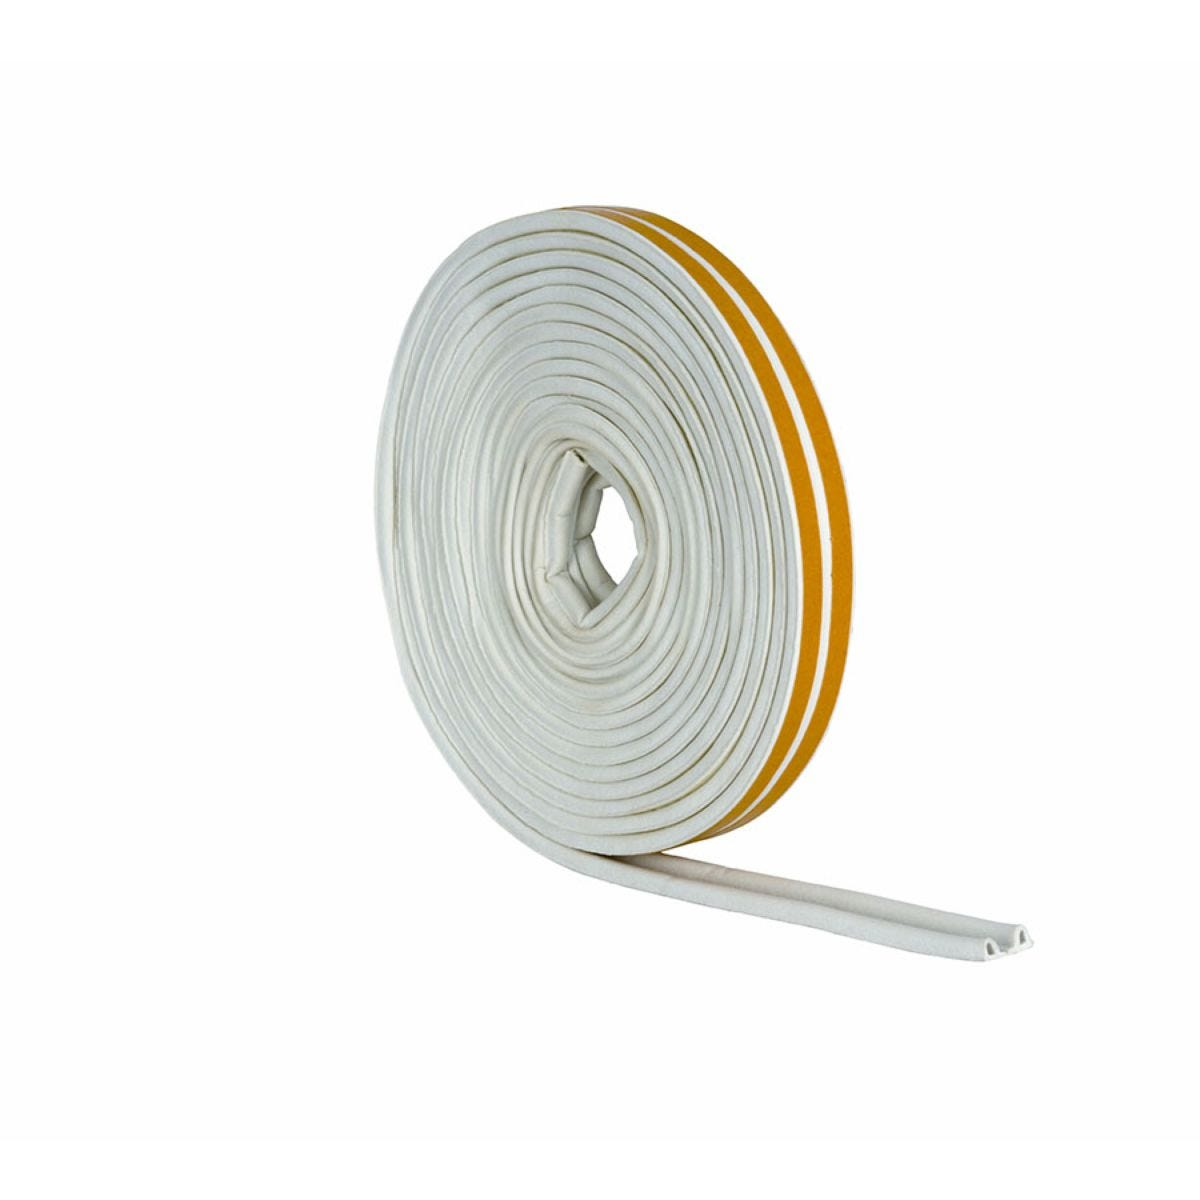 Stormguard 'P' Profile White Rubber Draught Seal - 10m